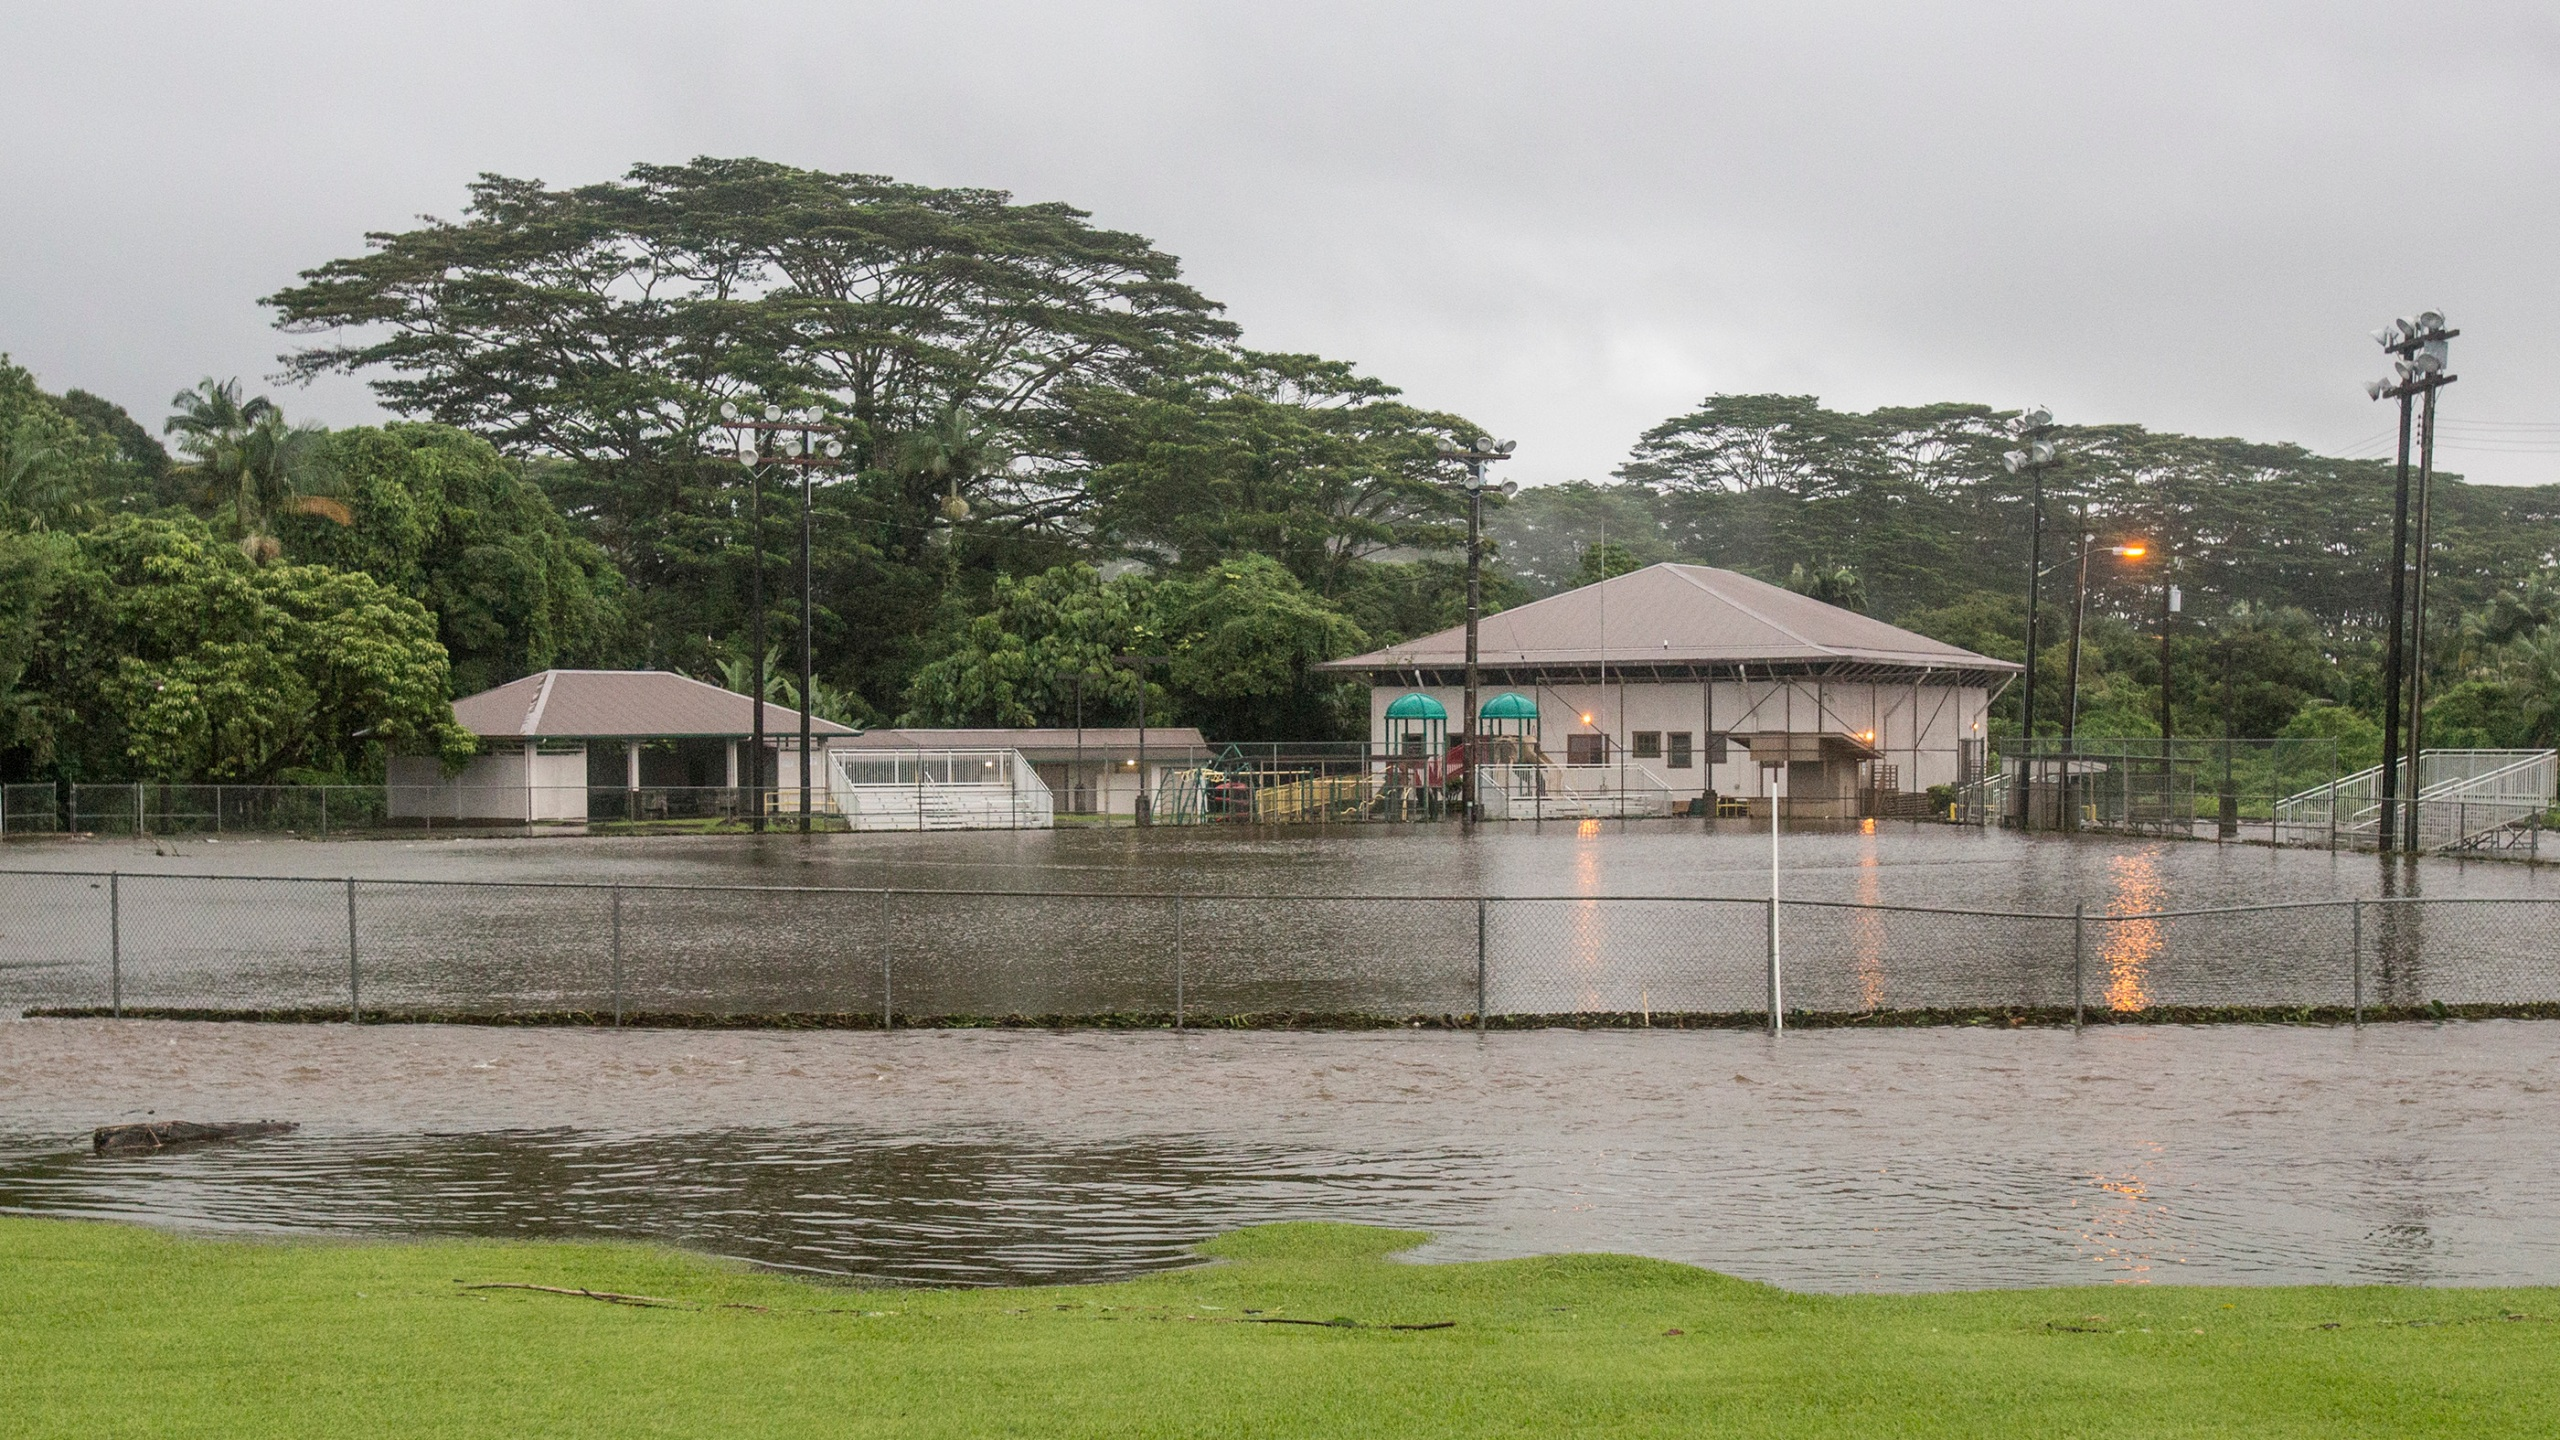 Hurricane_Lane_Hawaii_90120-159532.jpg12197633